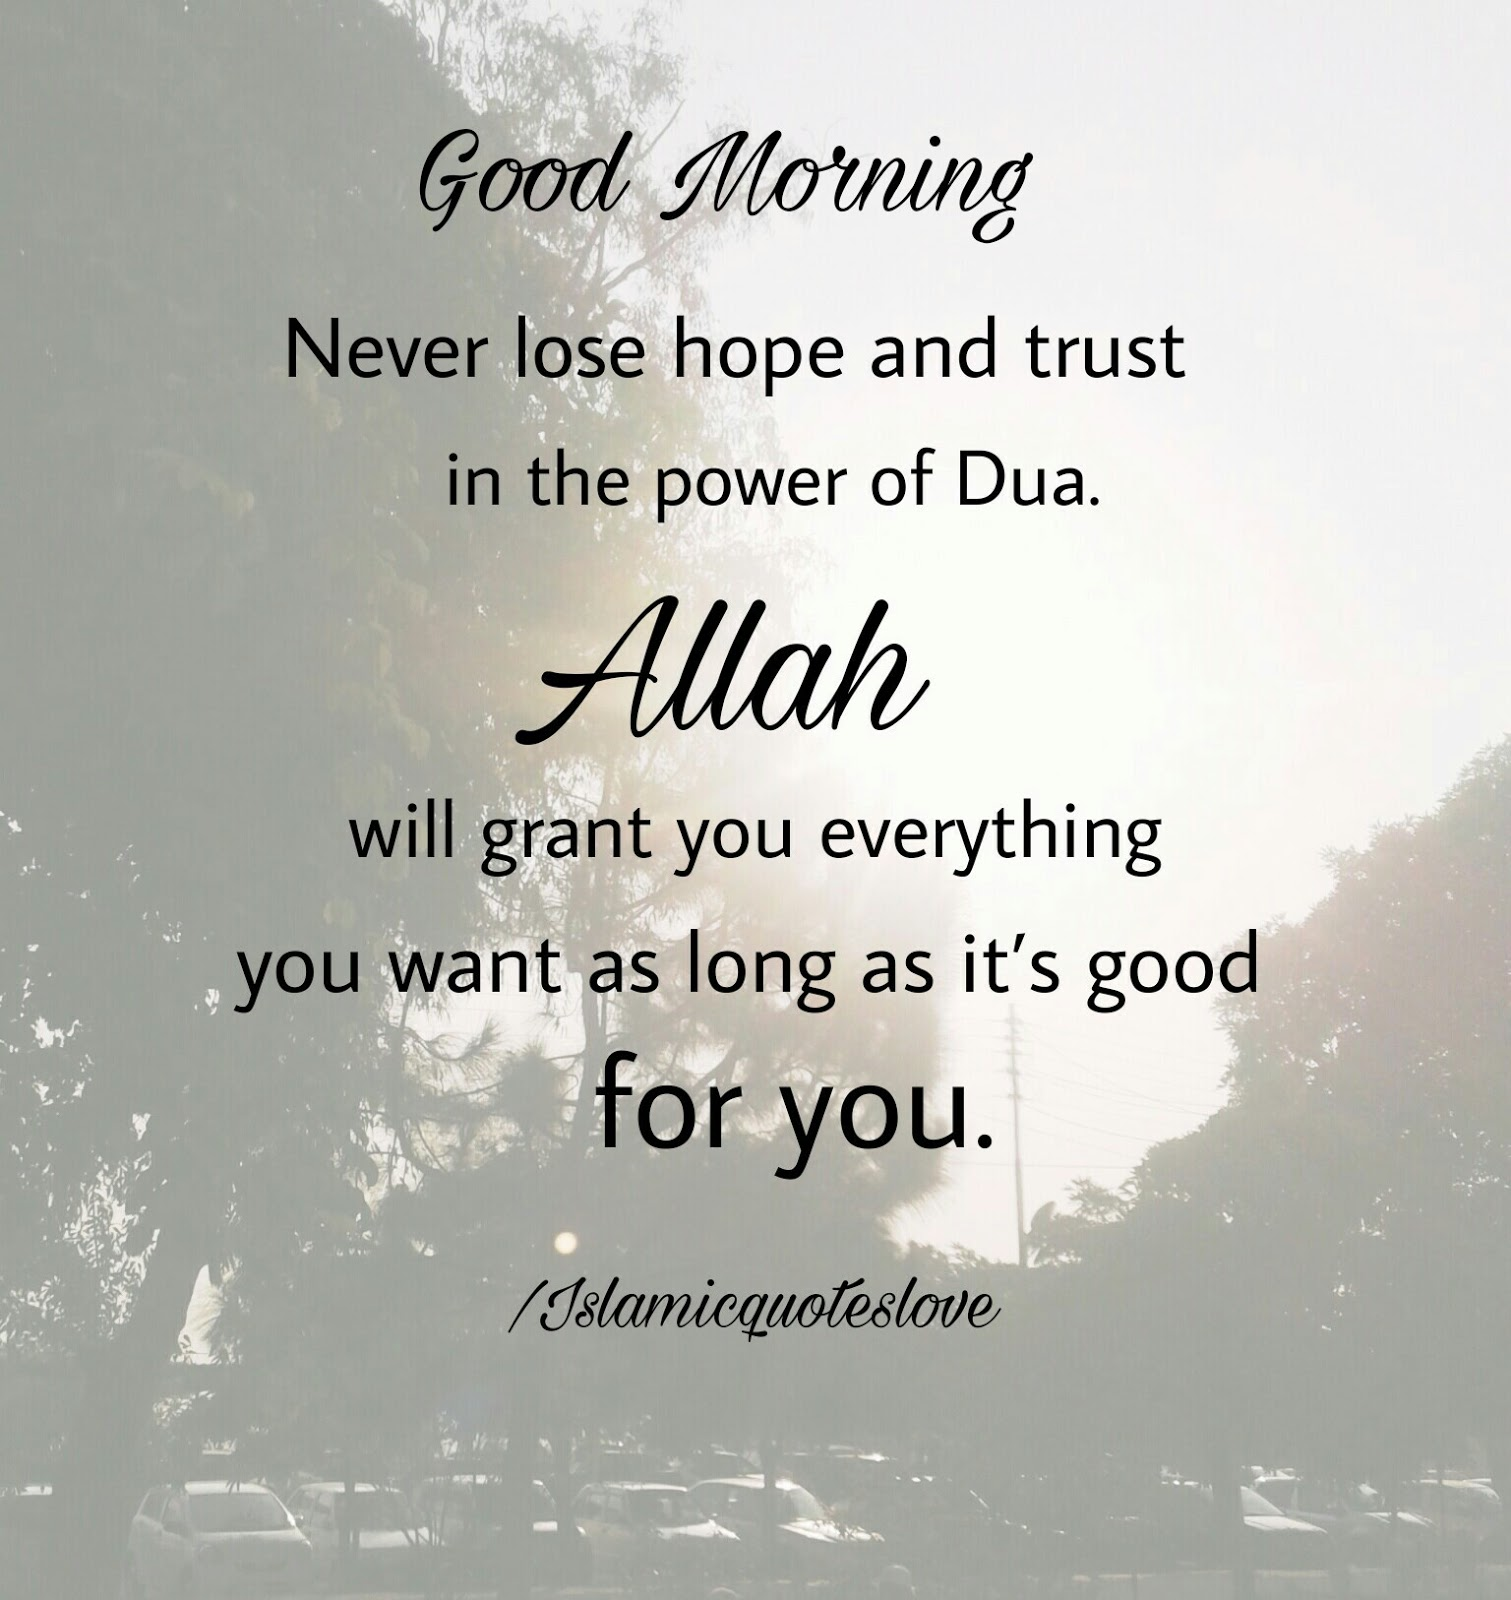 Sabr Quotes Wallpaper Islamic Quote Good Morning Never Lose Hope And Trust In